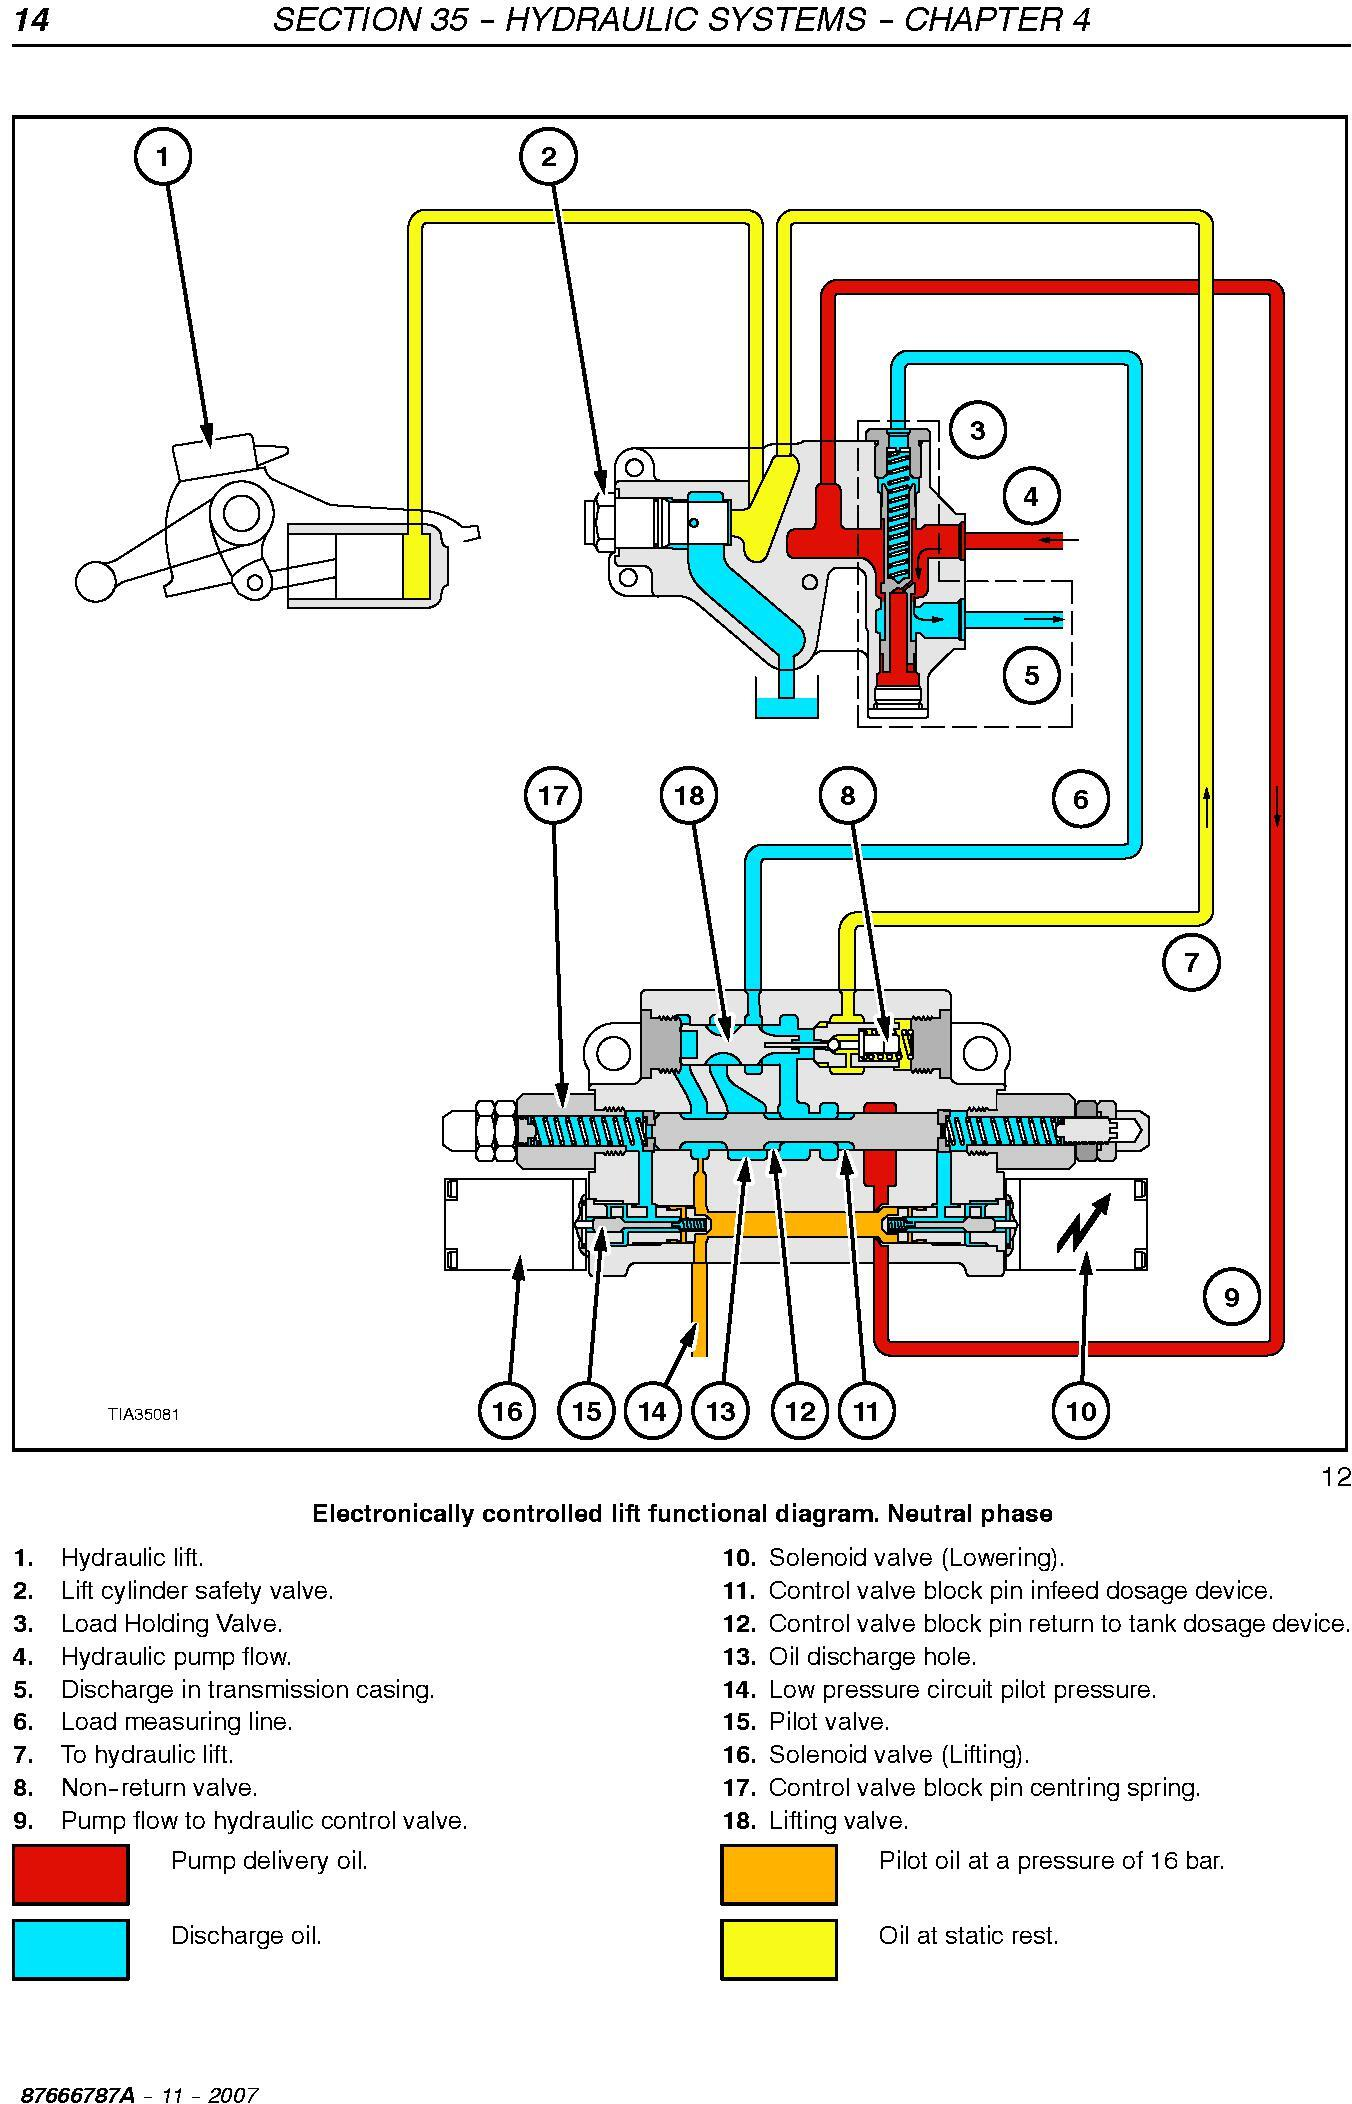 New Holland T4020, T4030, T4040, T4050 Deluxe / Supersteer Agricultural Tractors Service Manual - 2